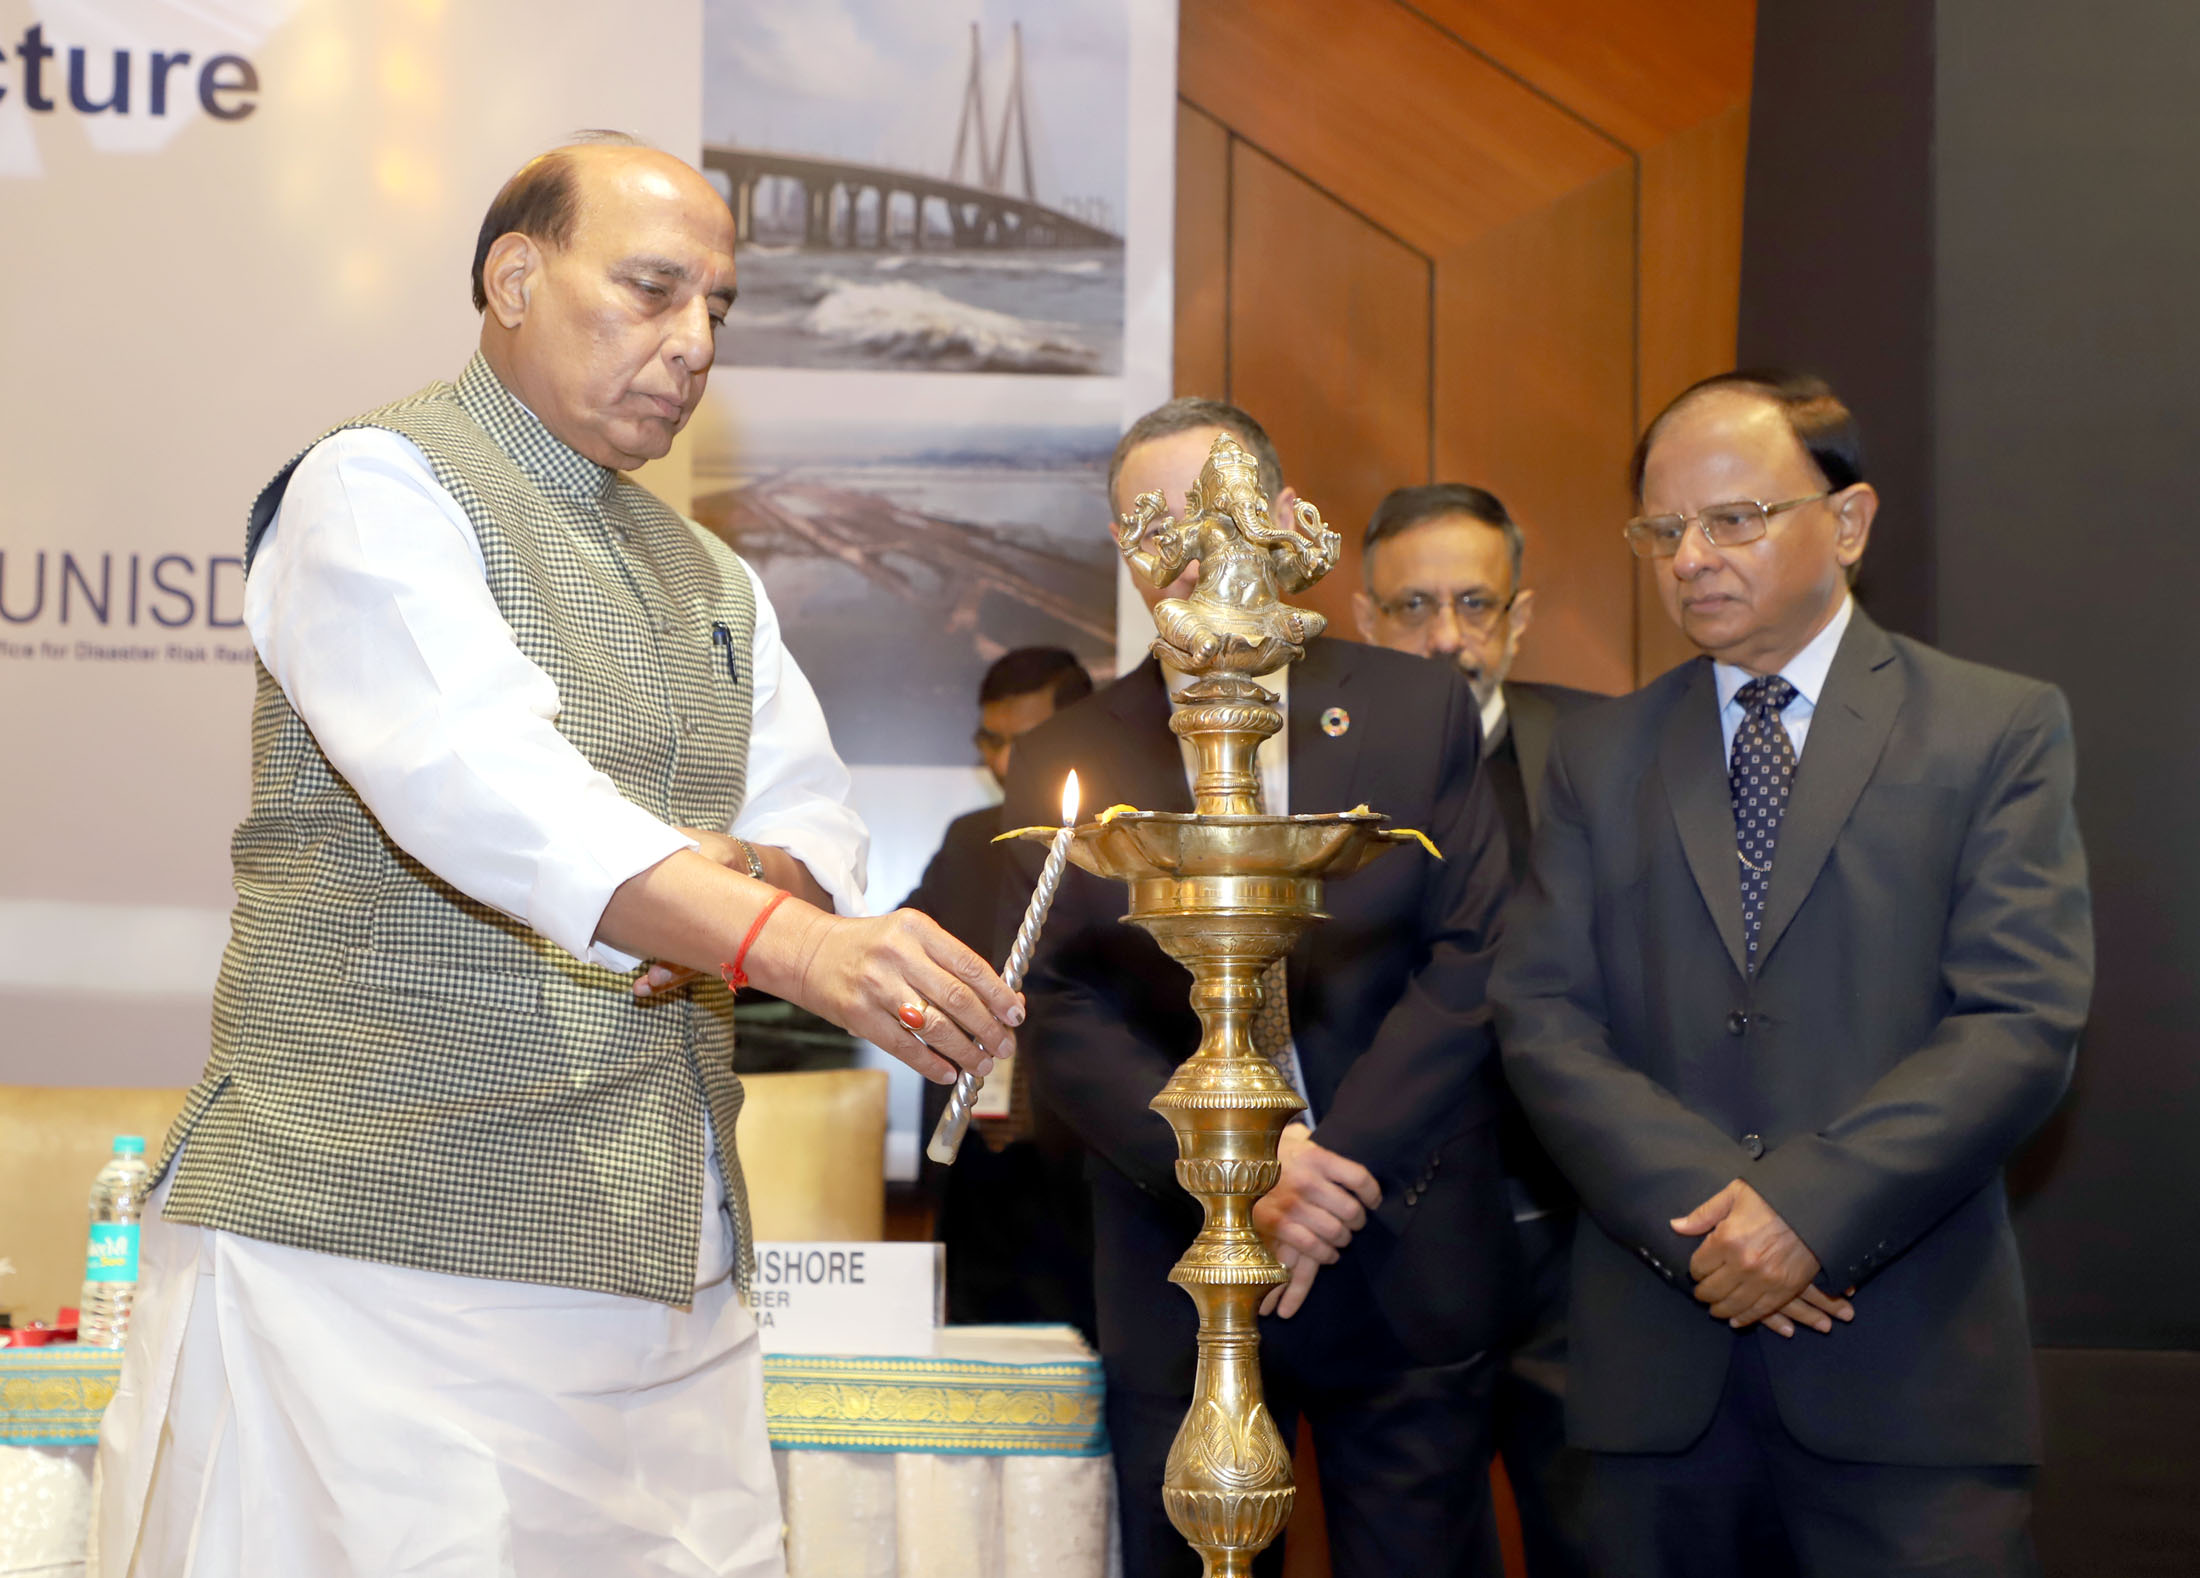 The Union Home Minister, Shri Rajnath Singh lighting the lamp to inaugurate the International Workshop on Disaster Resilient Infrastructure (IWDRI), in New Delhi on January 15, 2018. The Additional Principal Secretary to the Prime Minister, Dr. P.K. Mishra is also seen.